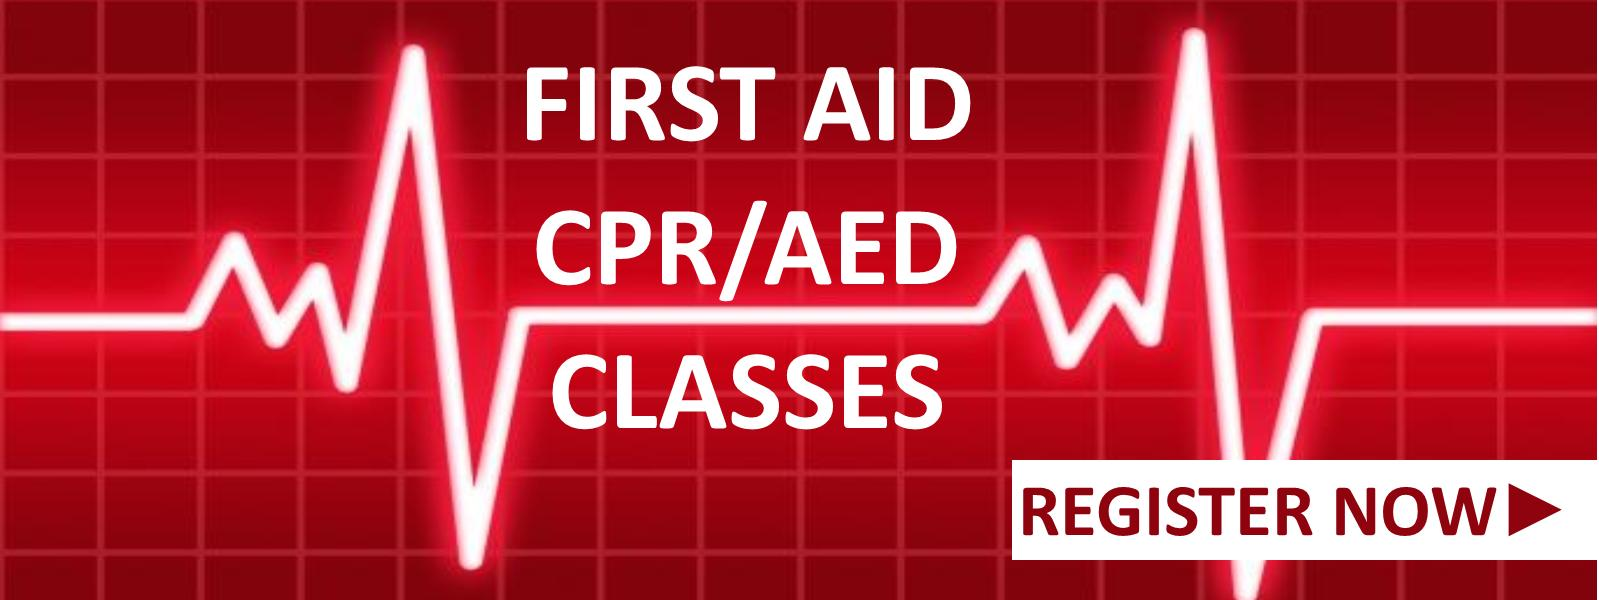 First Aid, CPR/AED Classes, Register Now!